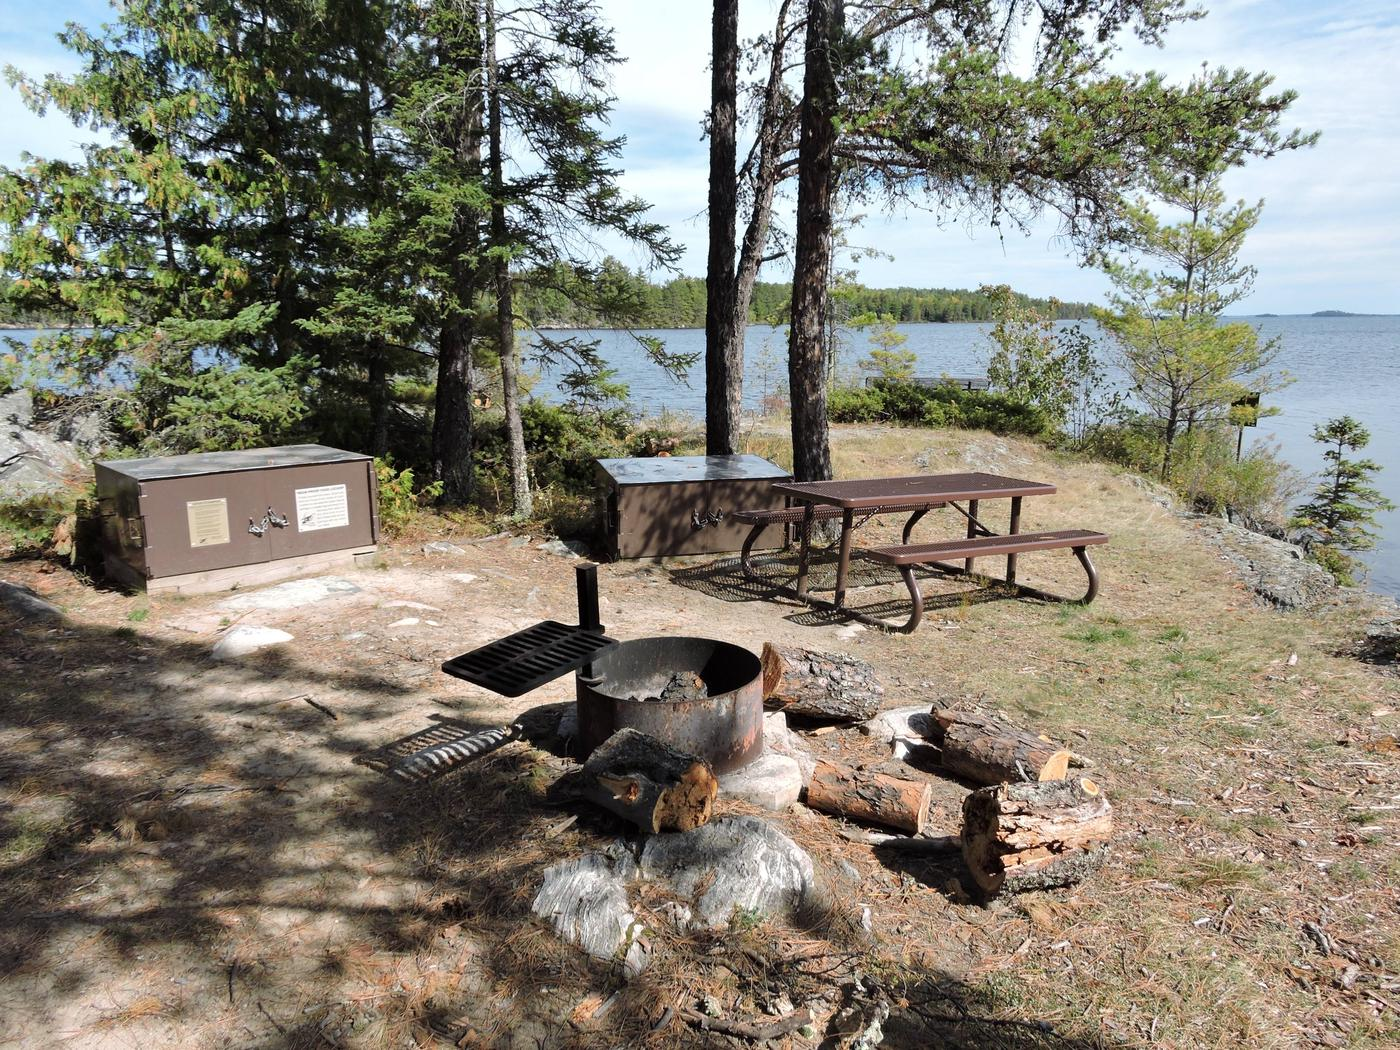 R100 - Channel ViewR100 - Channel View campsite on Rainy Lake